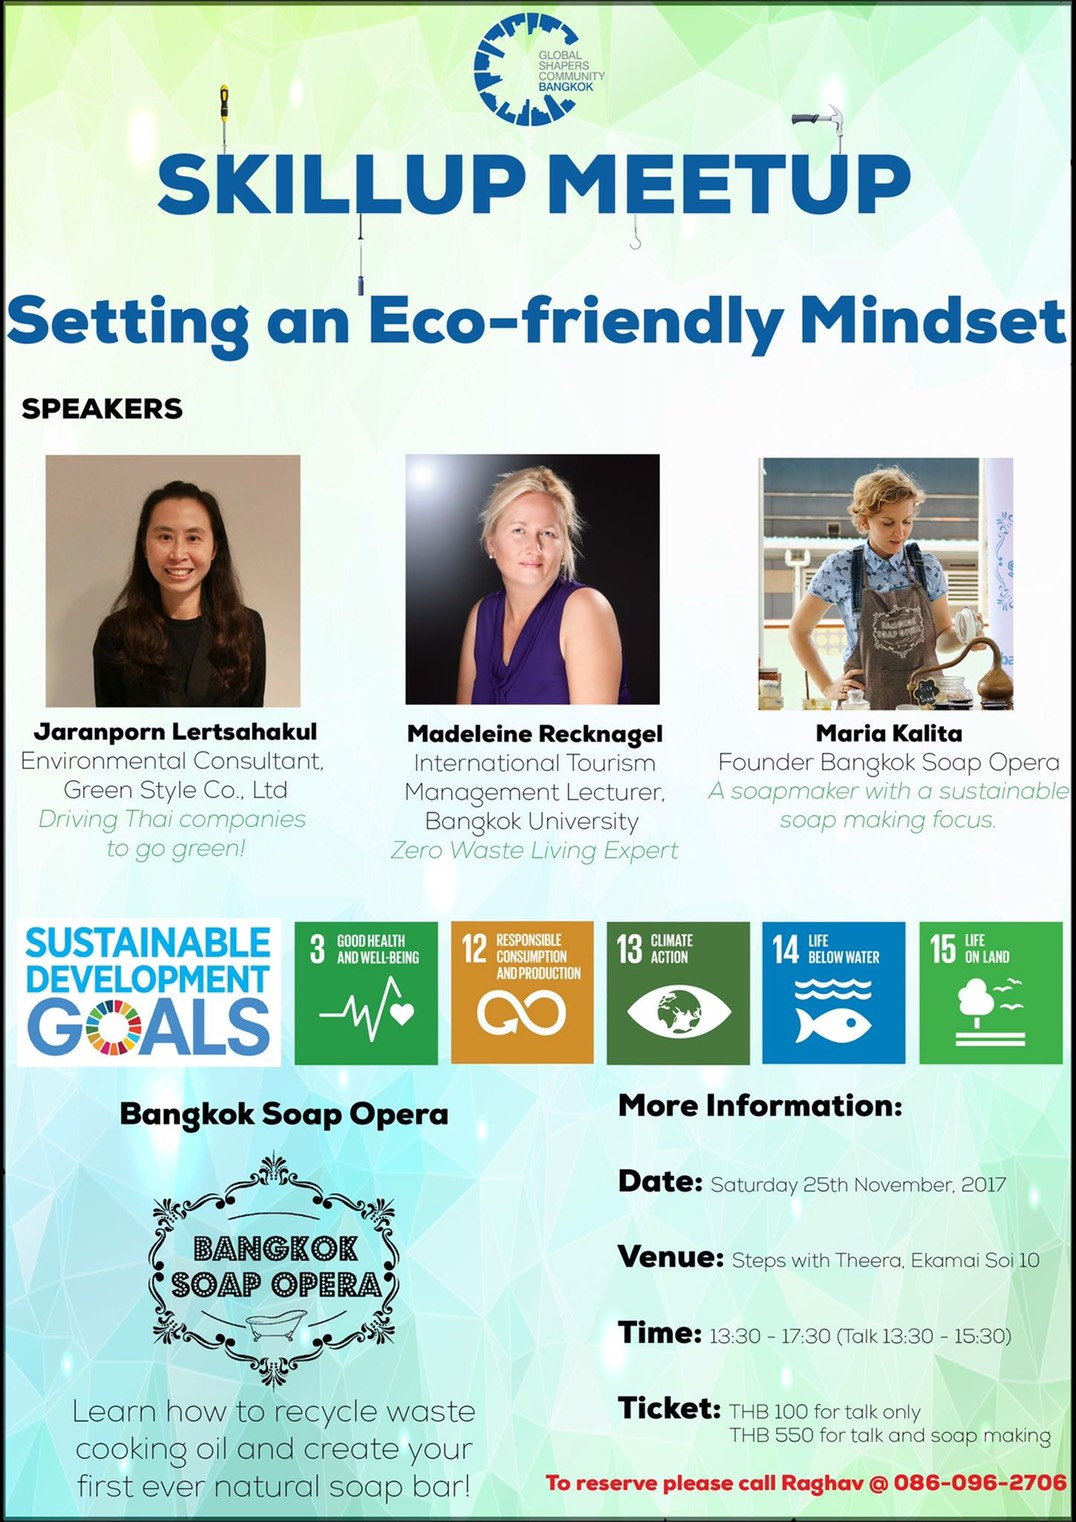 GLOBAL SHAPERS : SETTING AN ECO-FRIENDLY MINDSET